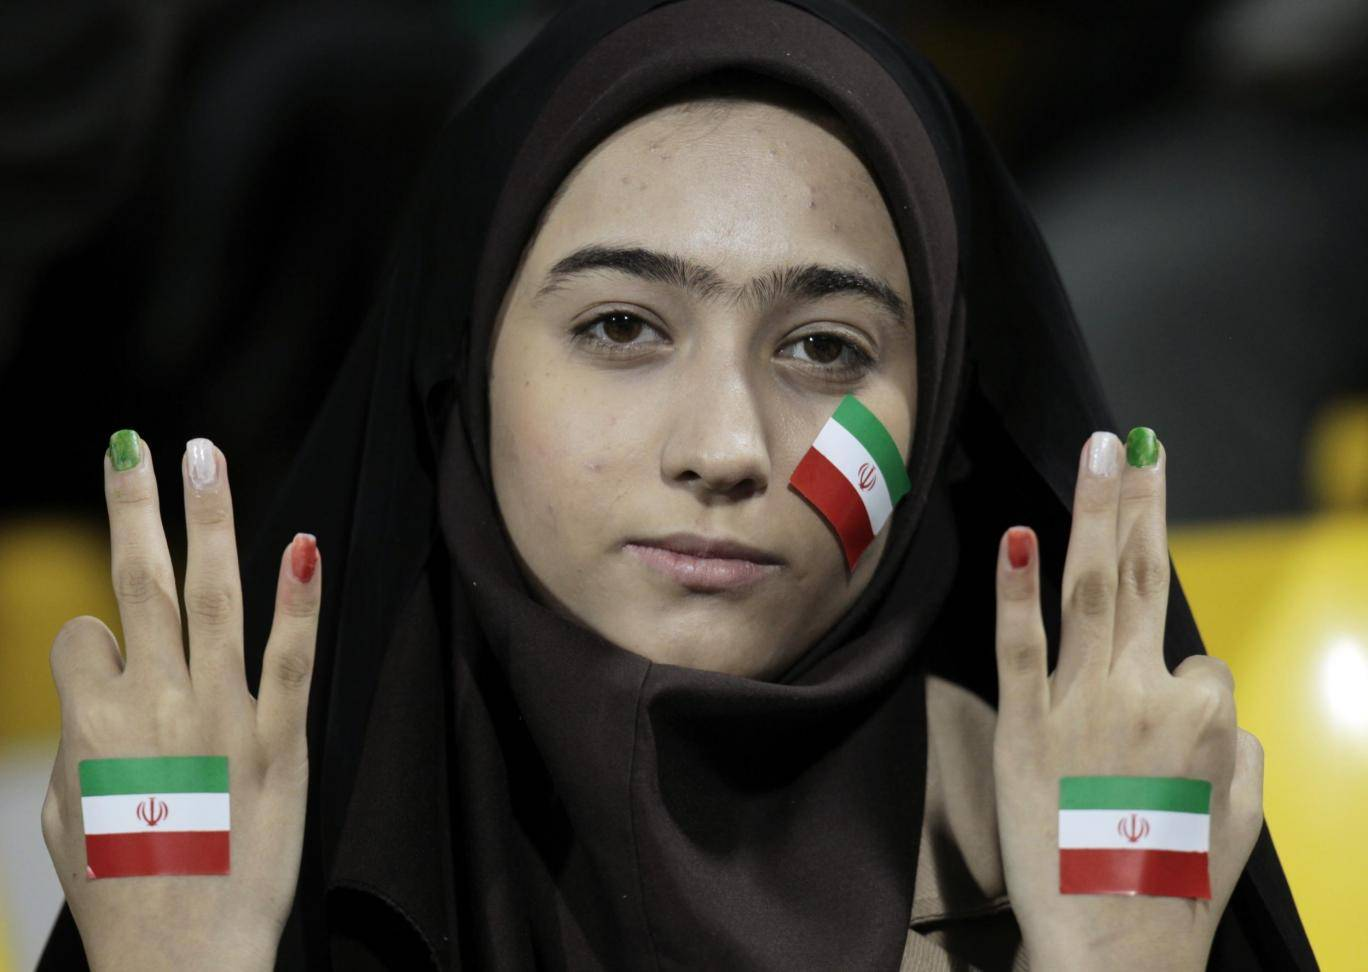 Fifa: Iran 'promises' women will be able to watch football matches the same day 35 female fans are arrested